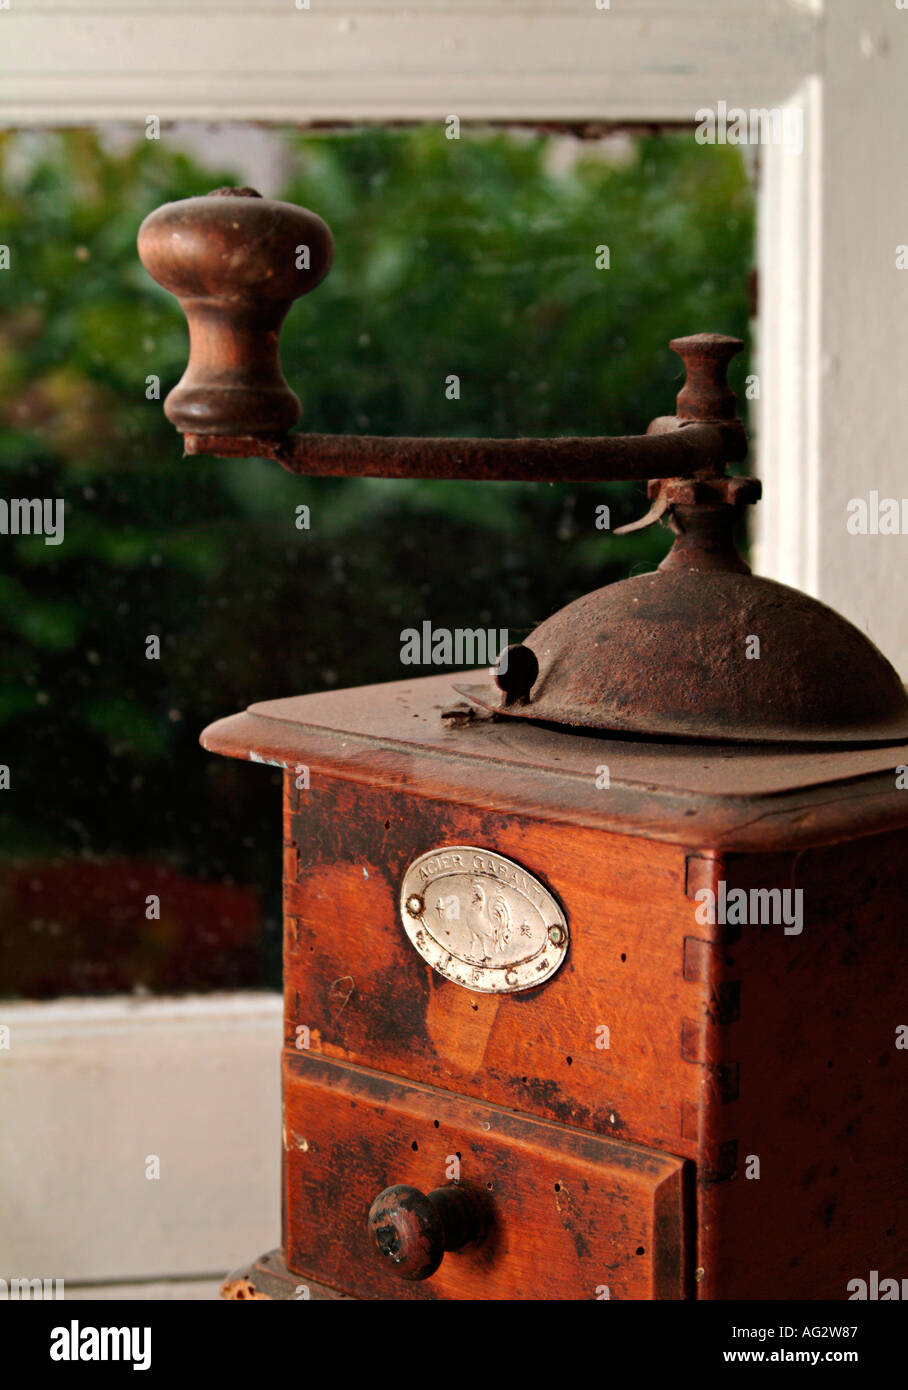 old nostalgic coffee mill grinder on window sill - Stock Image